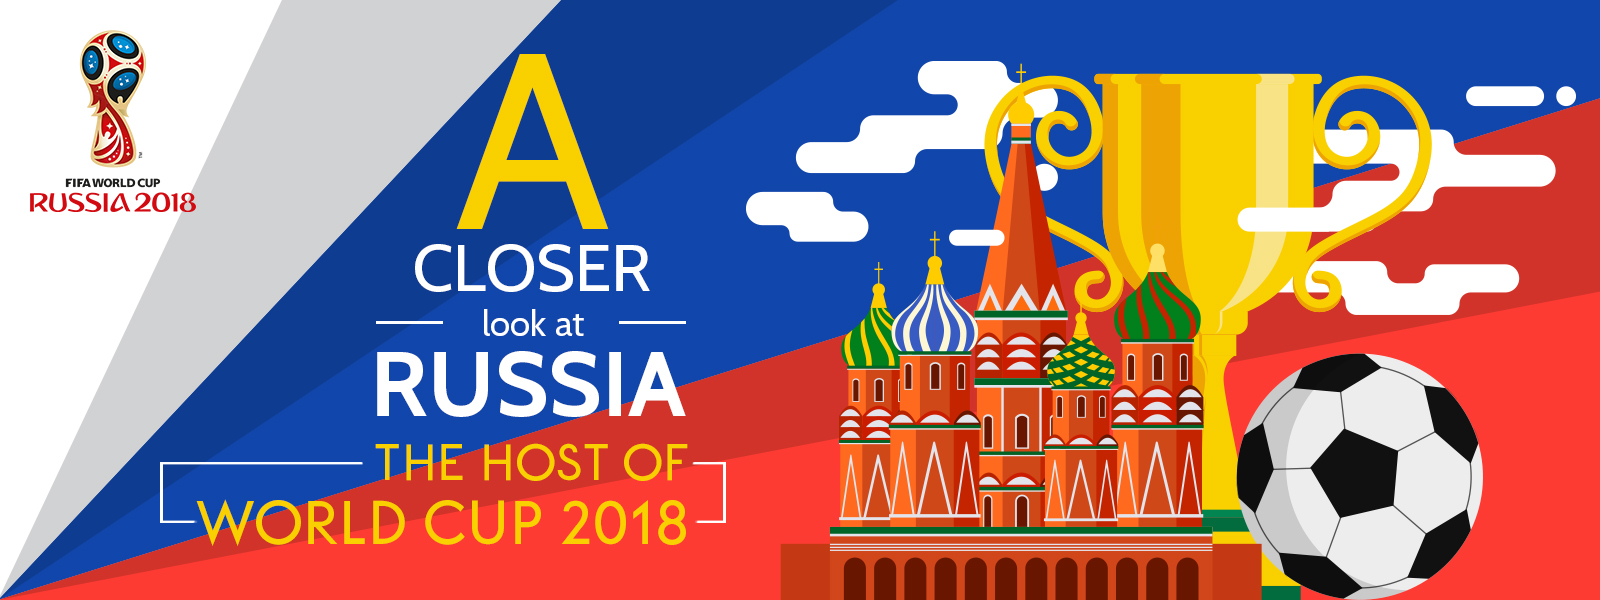 A close look at Russia ?C The host of World Cup 2018